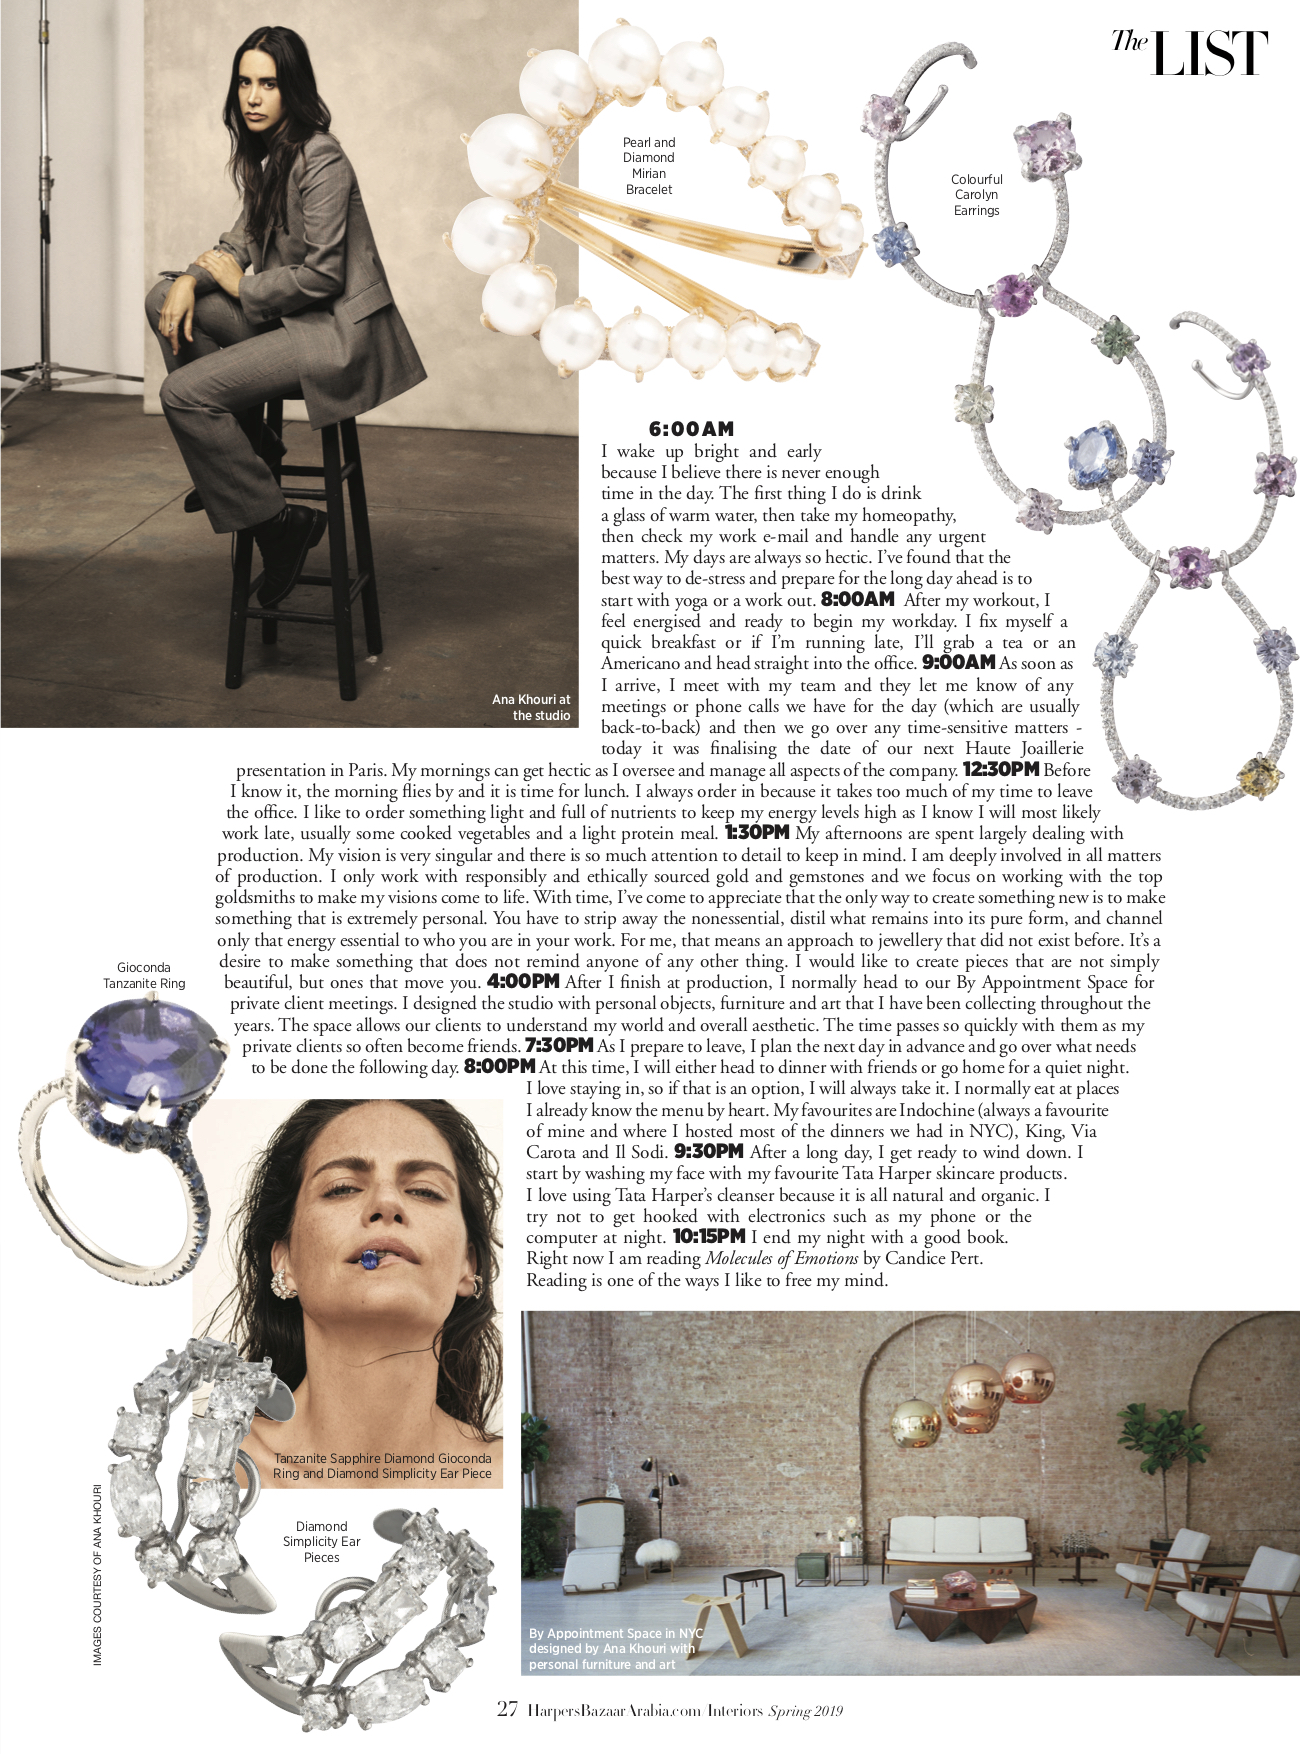 Harpers Bazaar Interiors Middle East Spring 2019 Colorful Carolyn, Tanzanite GIoconda Ring, Crosby, Diamond Simplicity Ear Piece, Pearl Mirian Bracelet.jpg